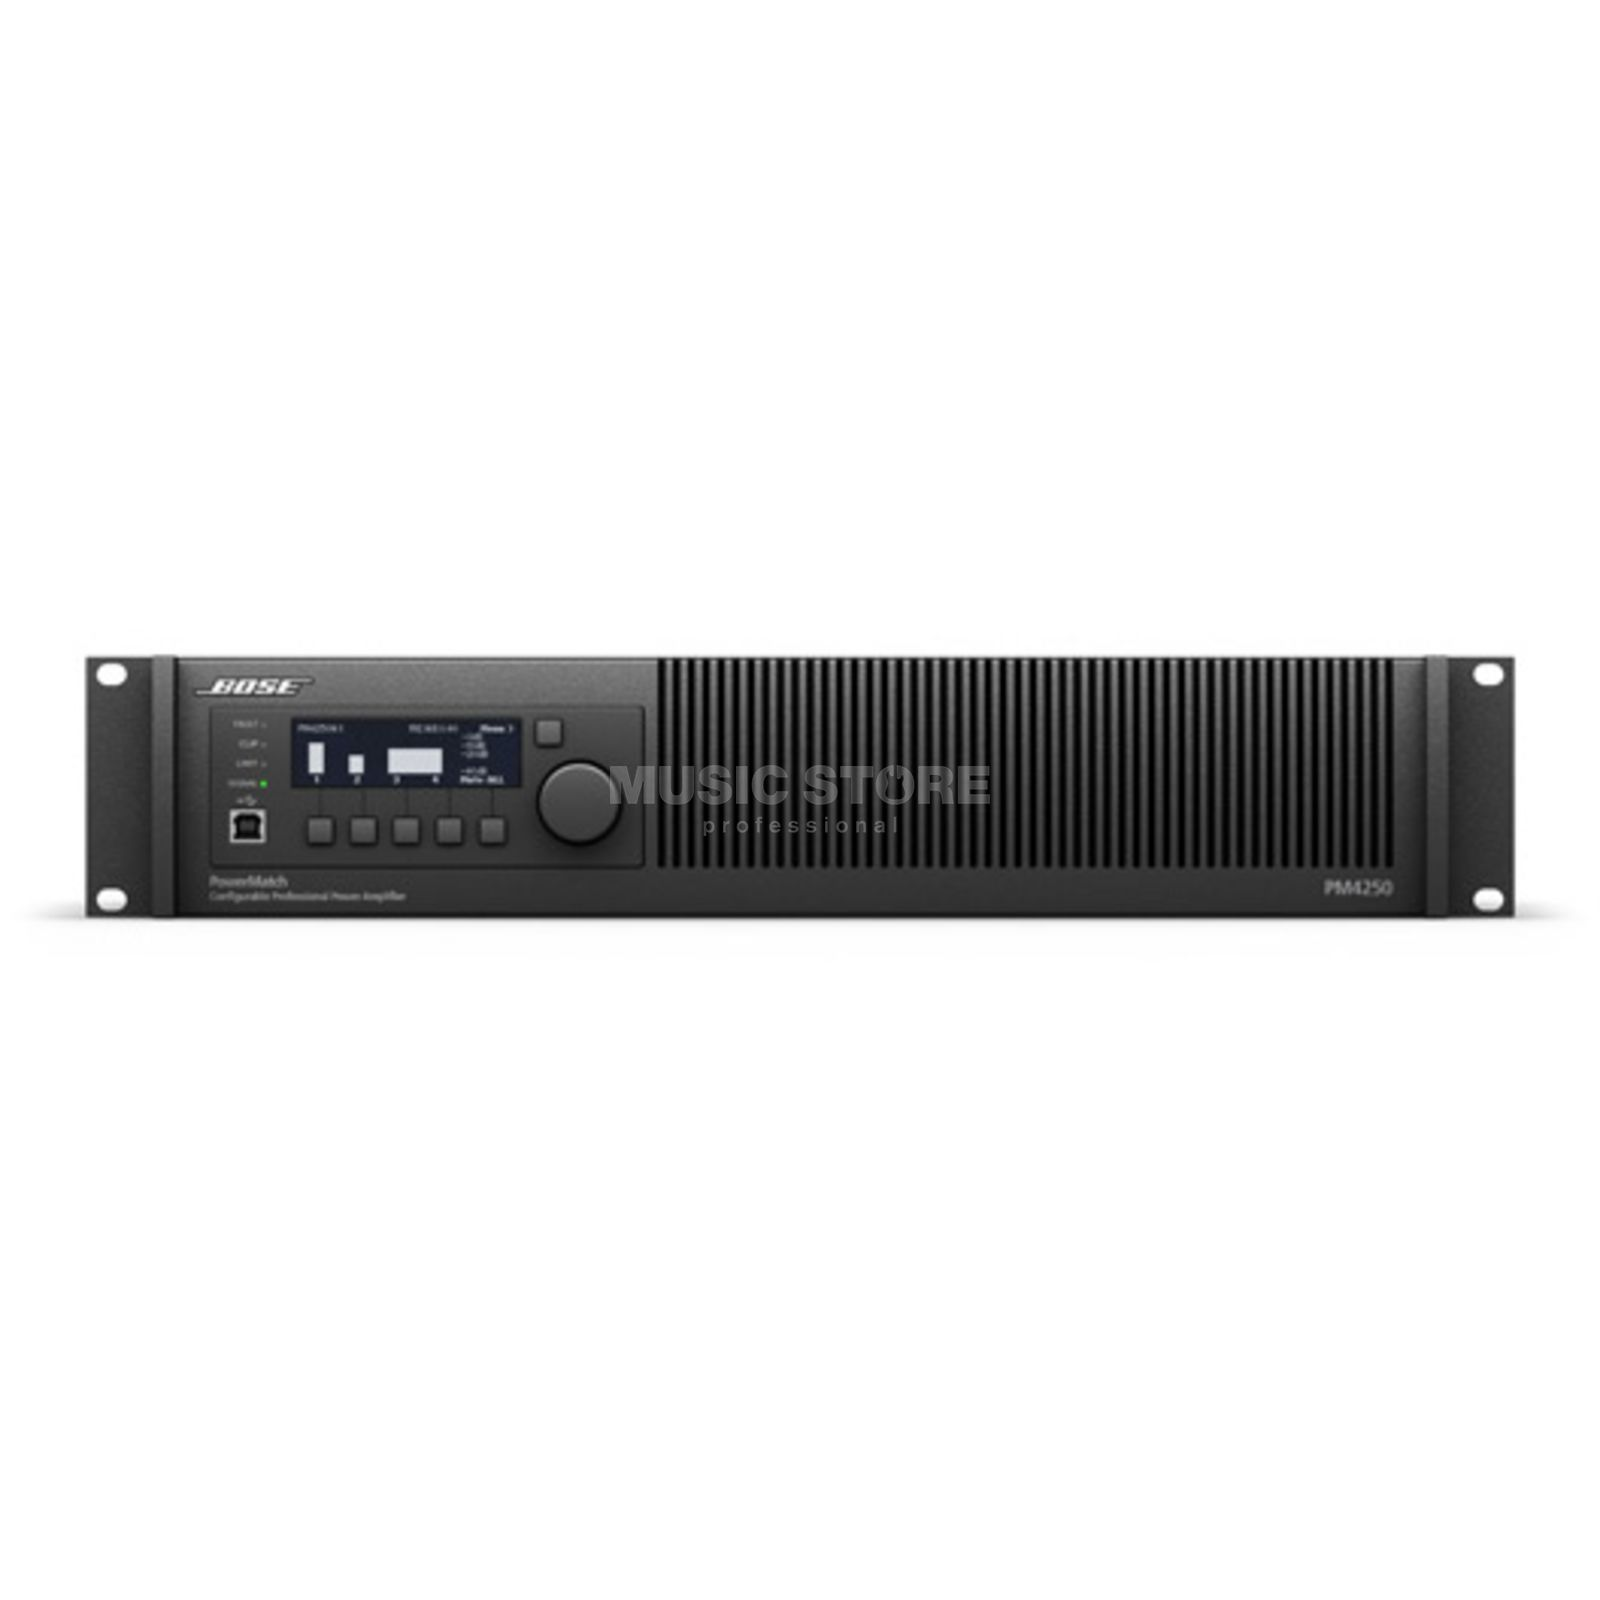 Bose PowerMatch PM4250 Amp config. Power Amp. 4Ch 1000W Produktbild